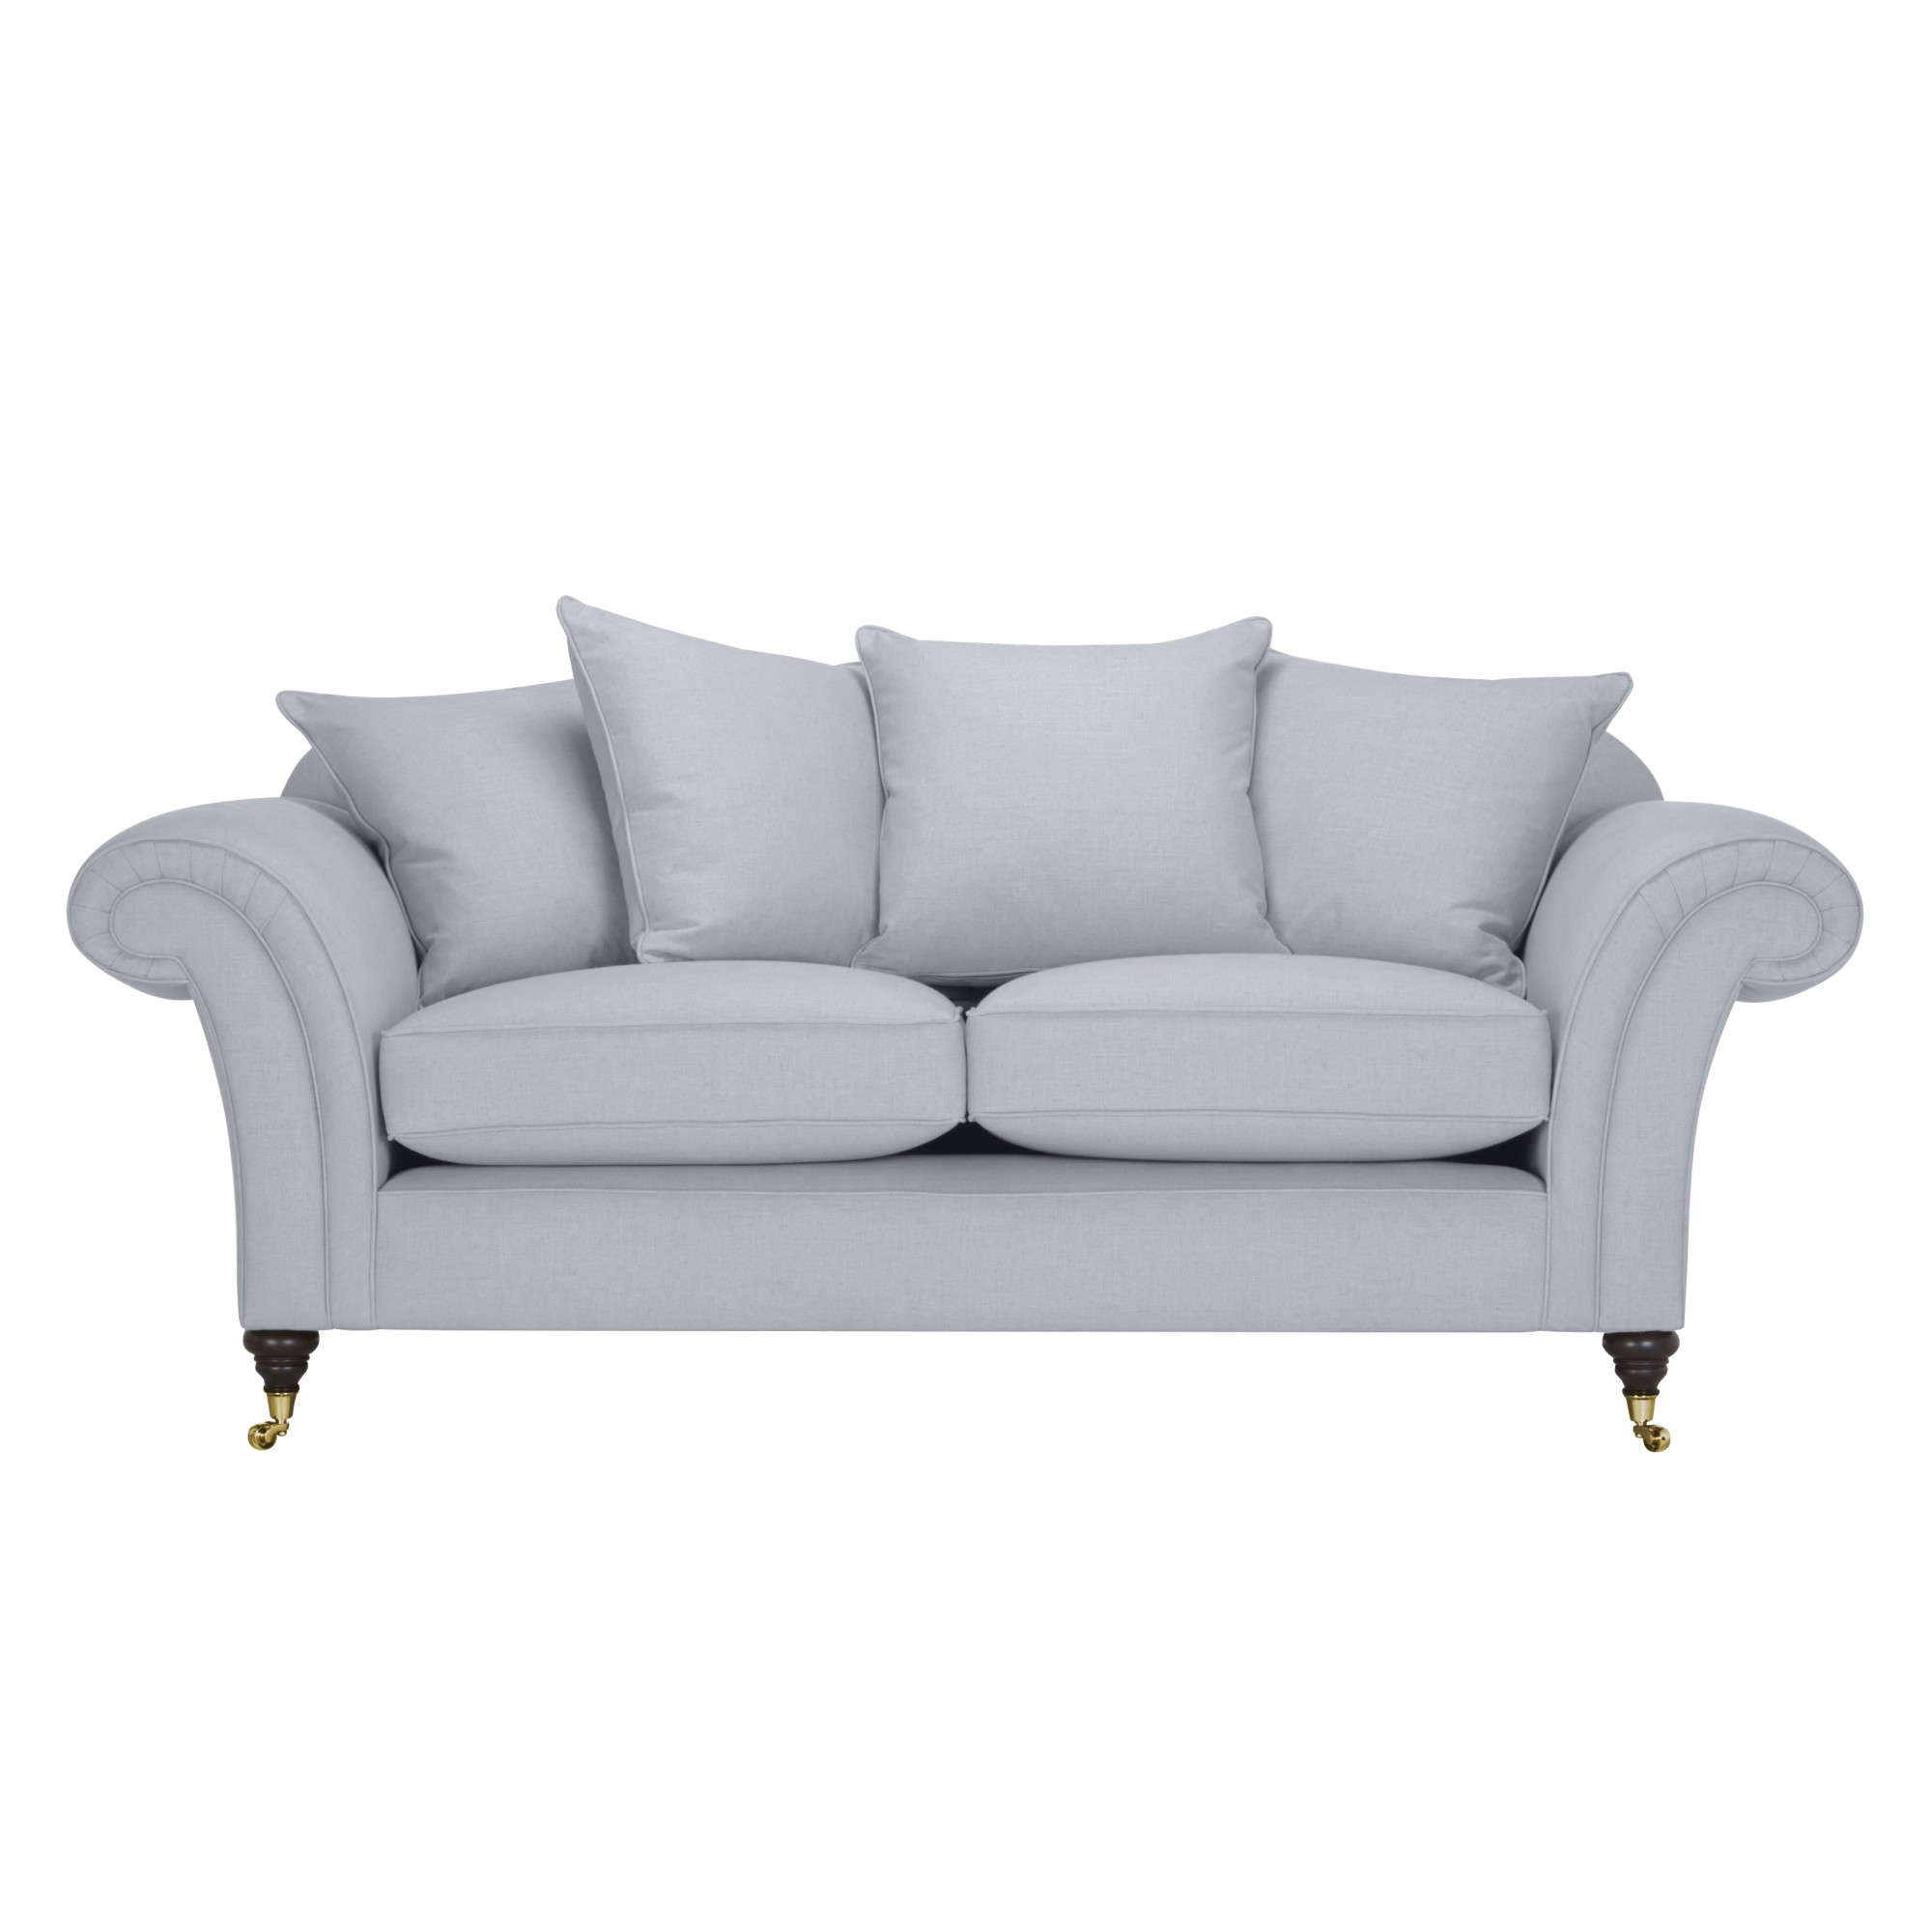 John lewis beaumont large scatter back sofa review best buy review for John lewis home design service reviews